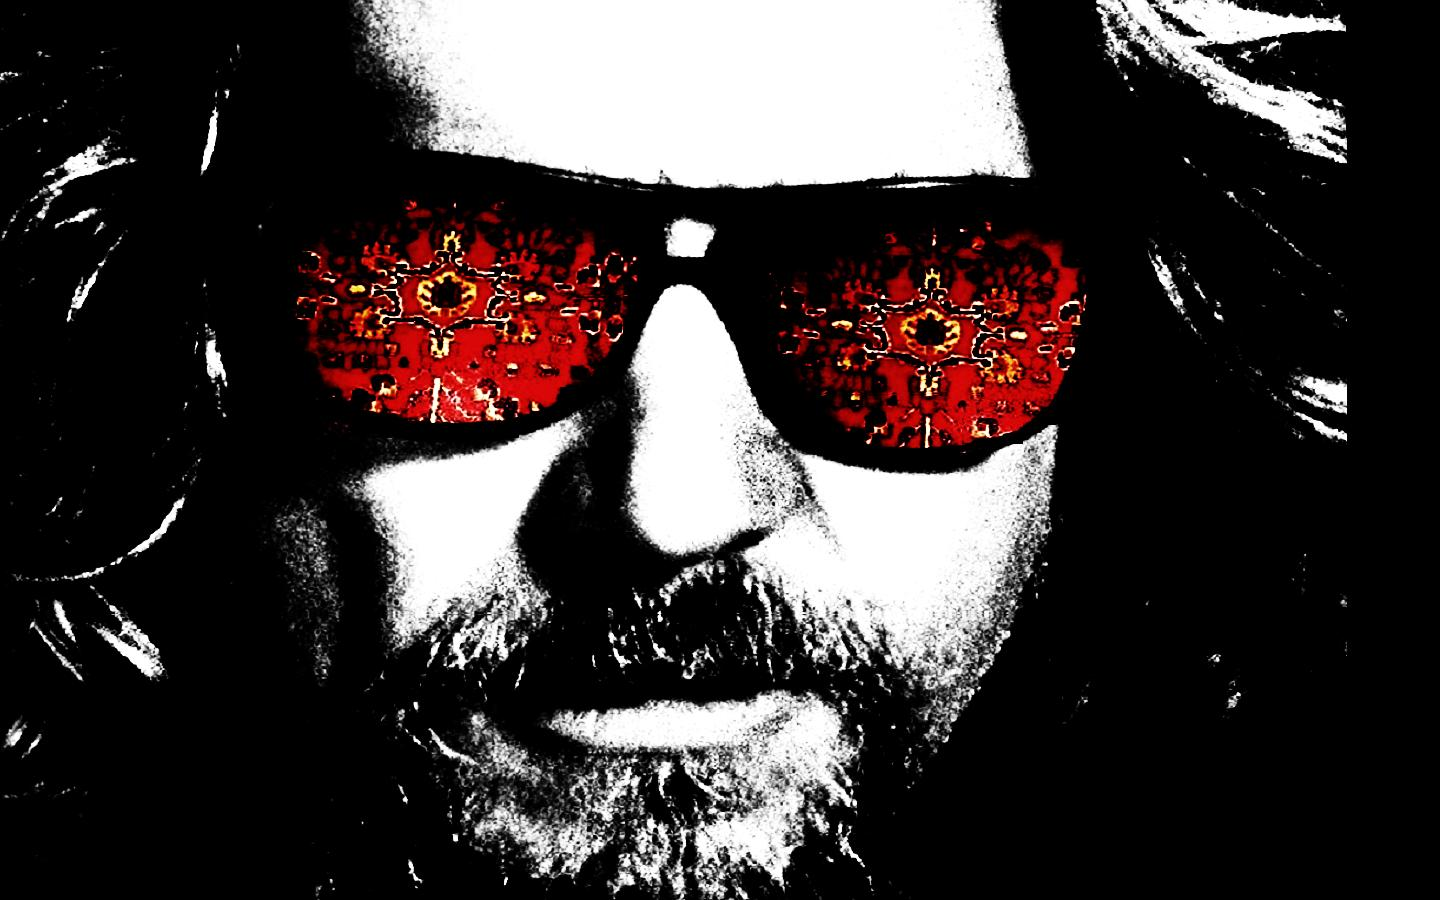 The Dude Abides Download HD Wallpapers And Free Images